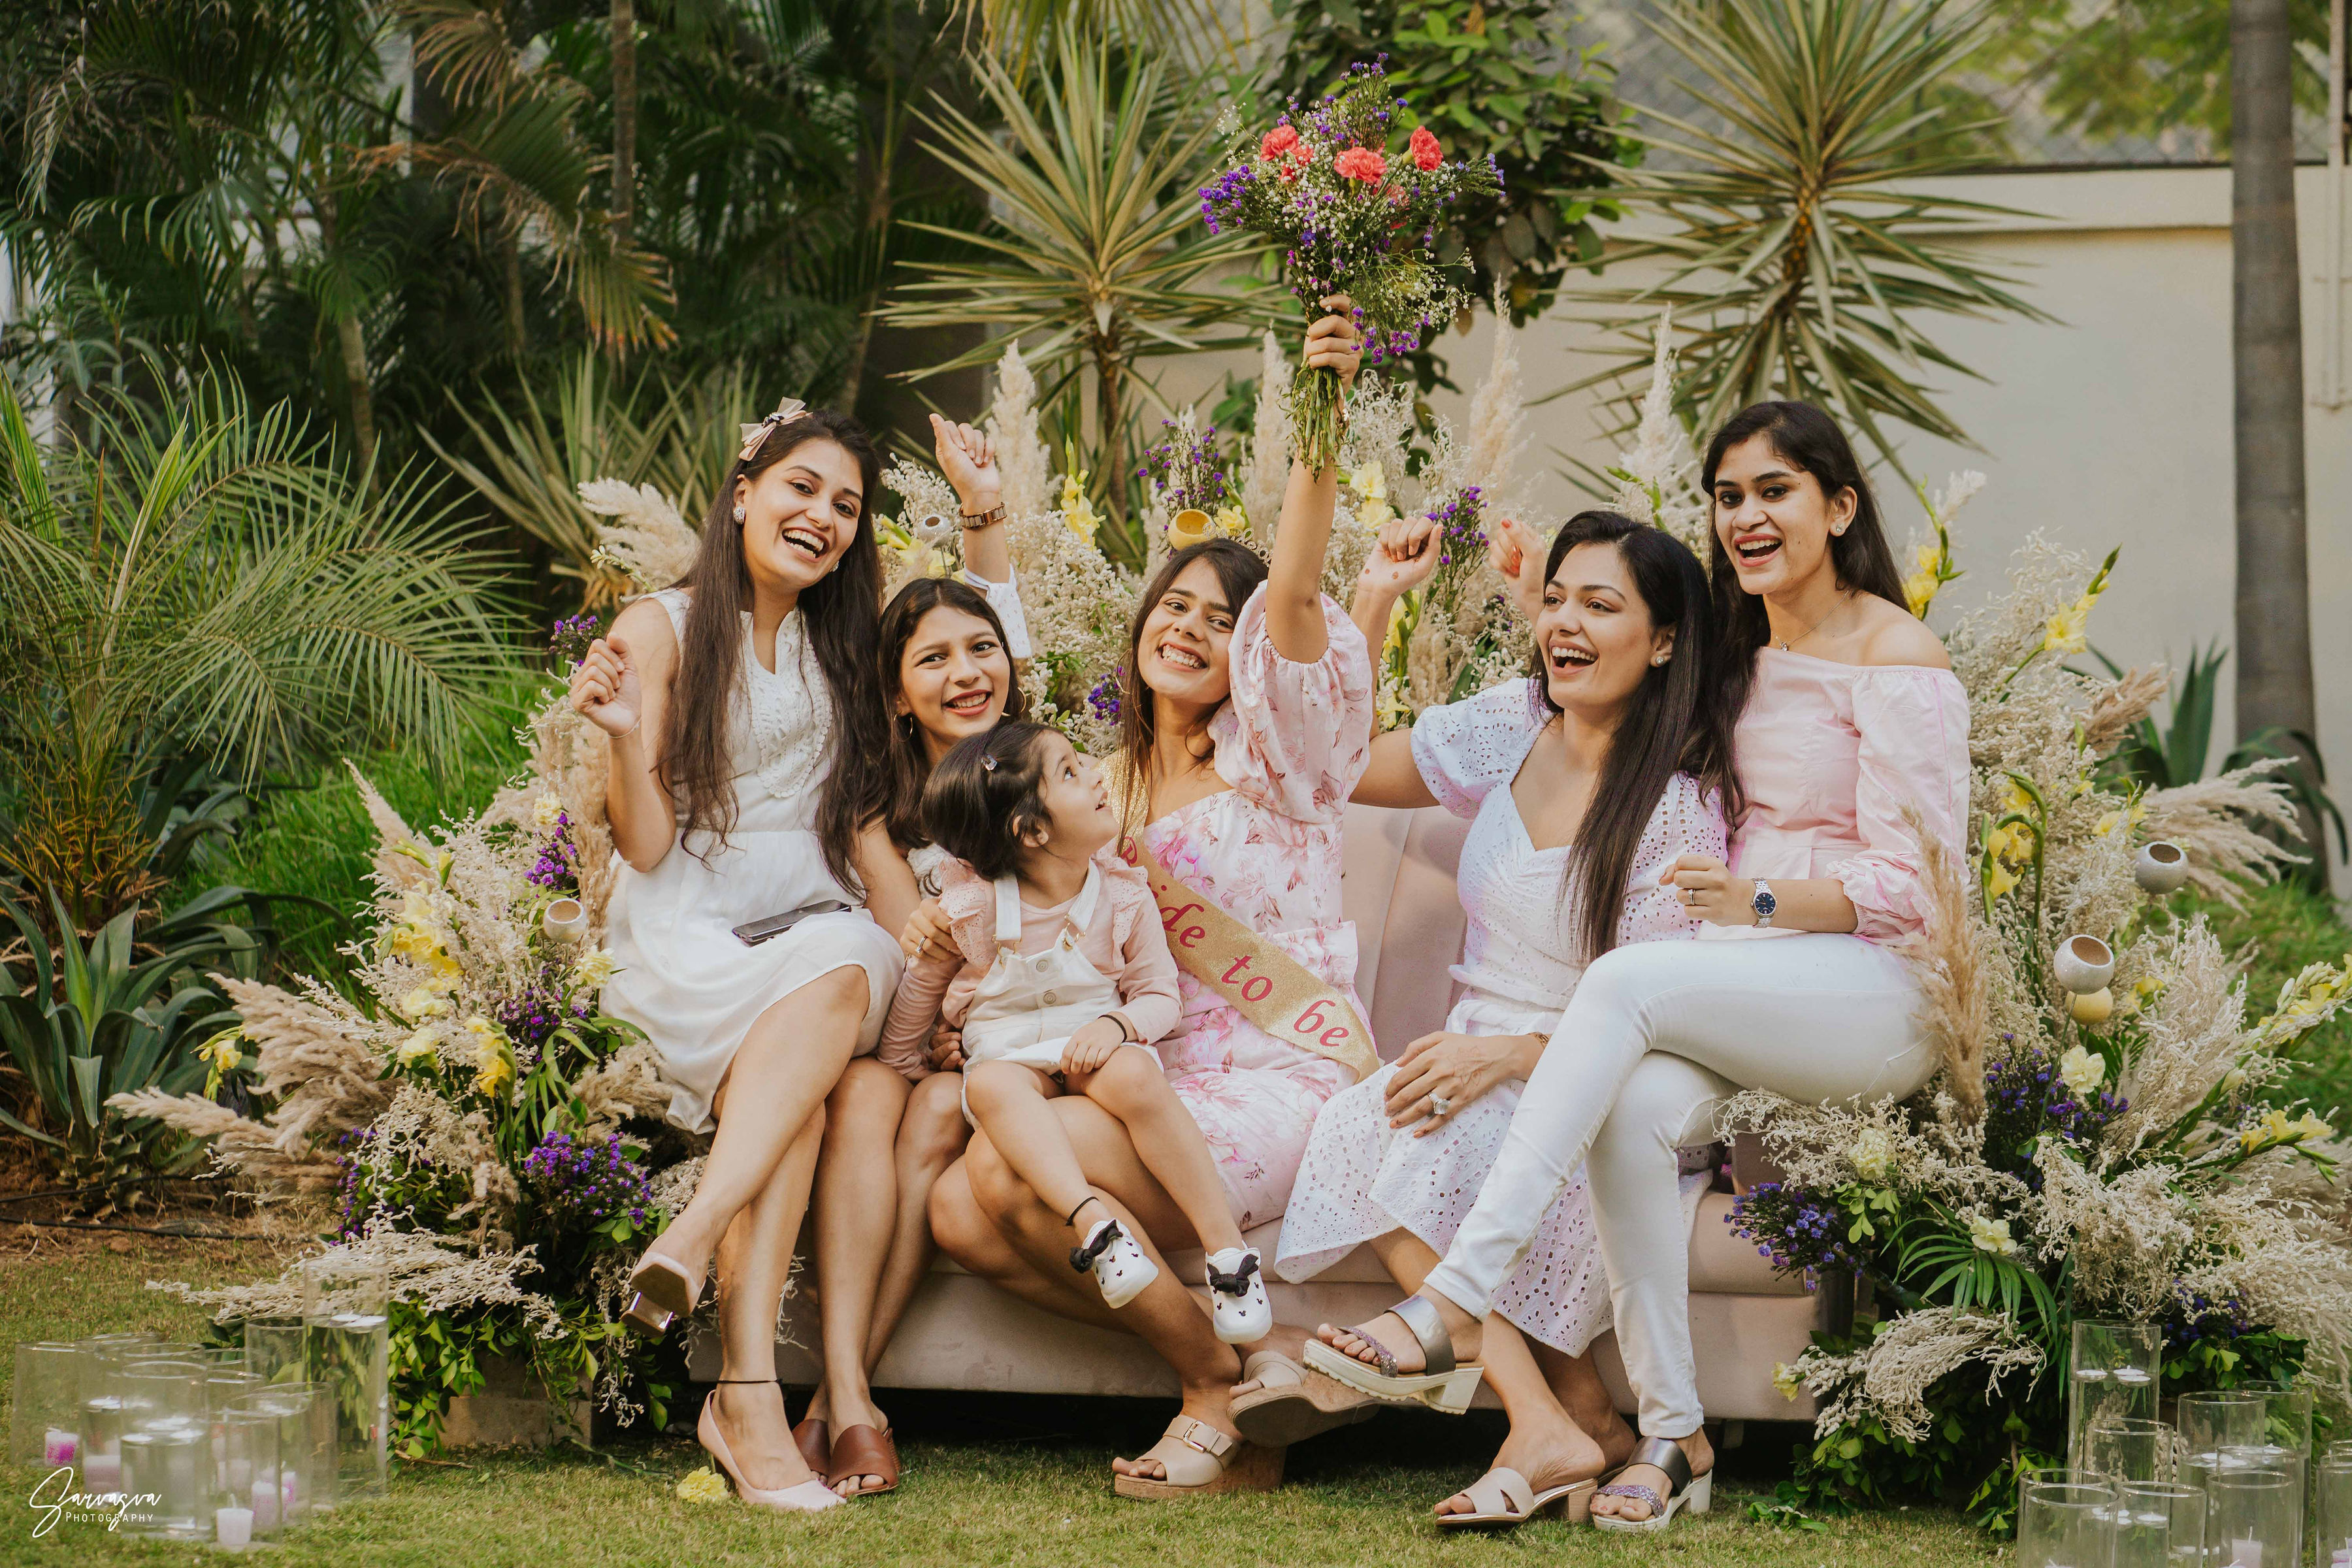 Bridesmaids With the bride-to-be